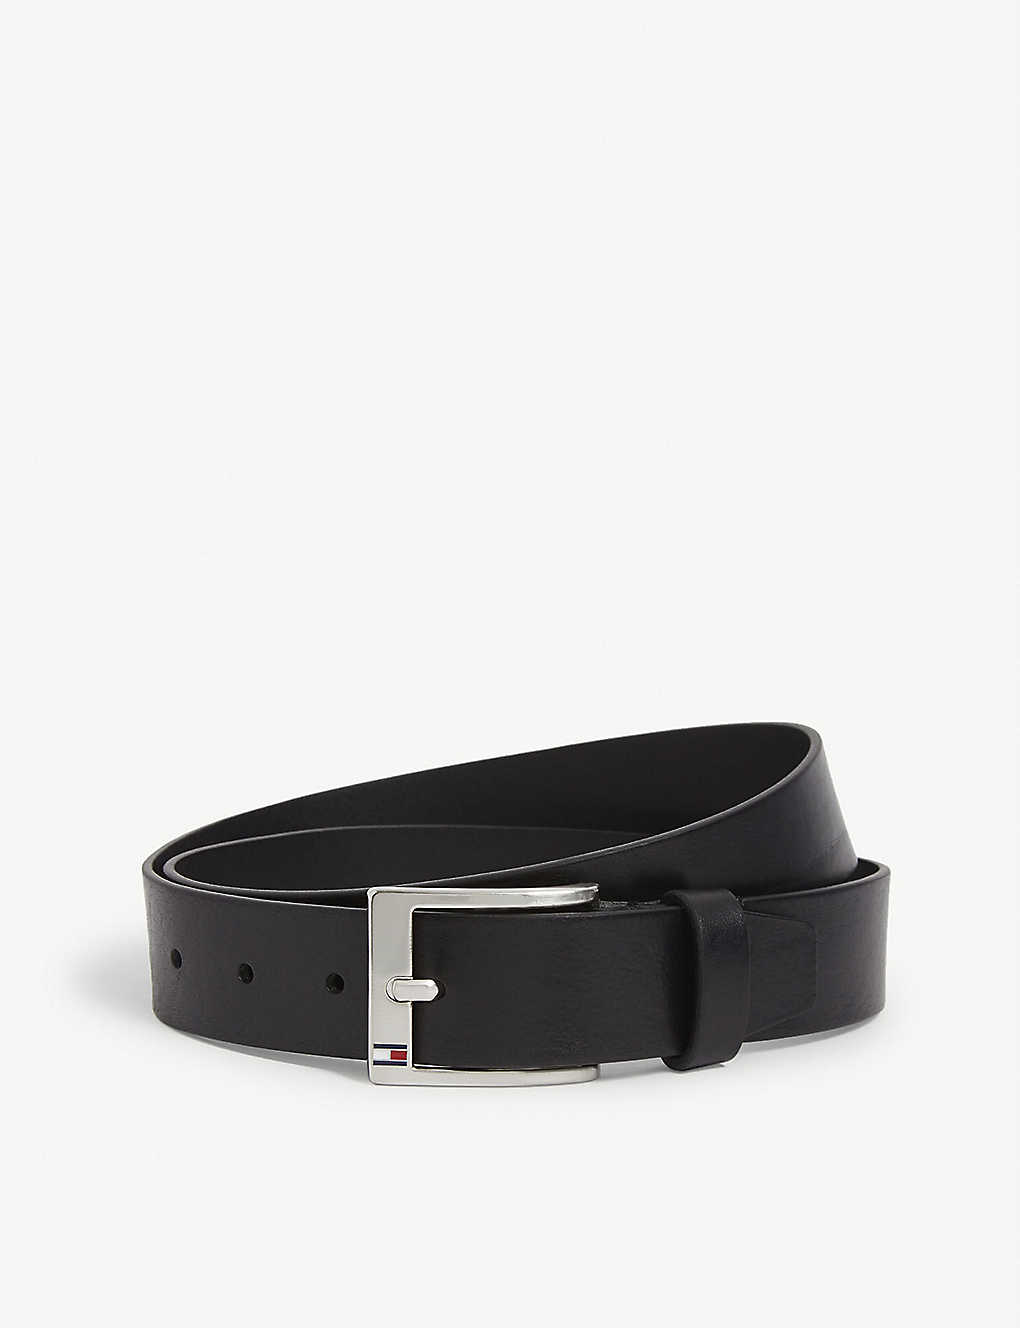 TOMMY HILFIGER: Enamel logo leather belt